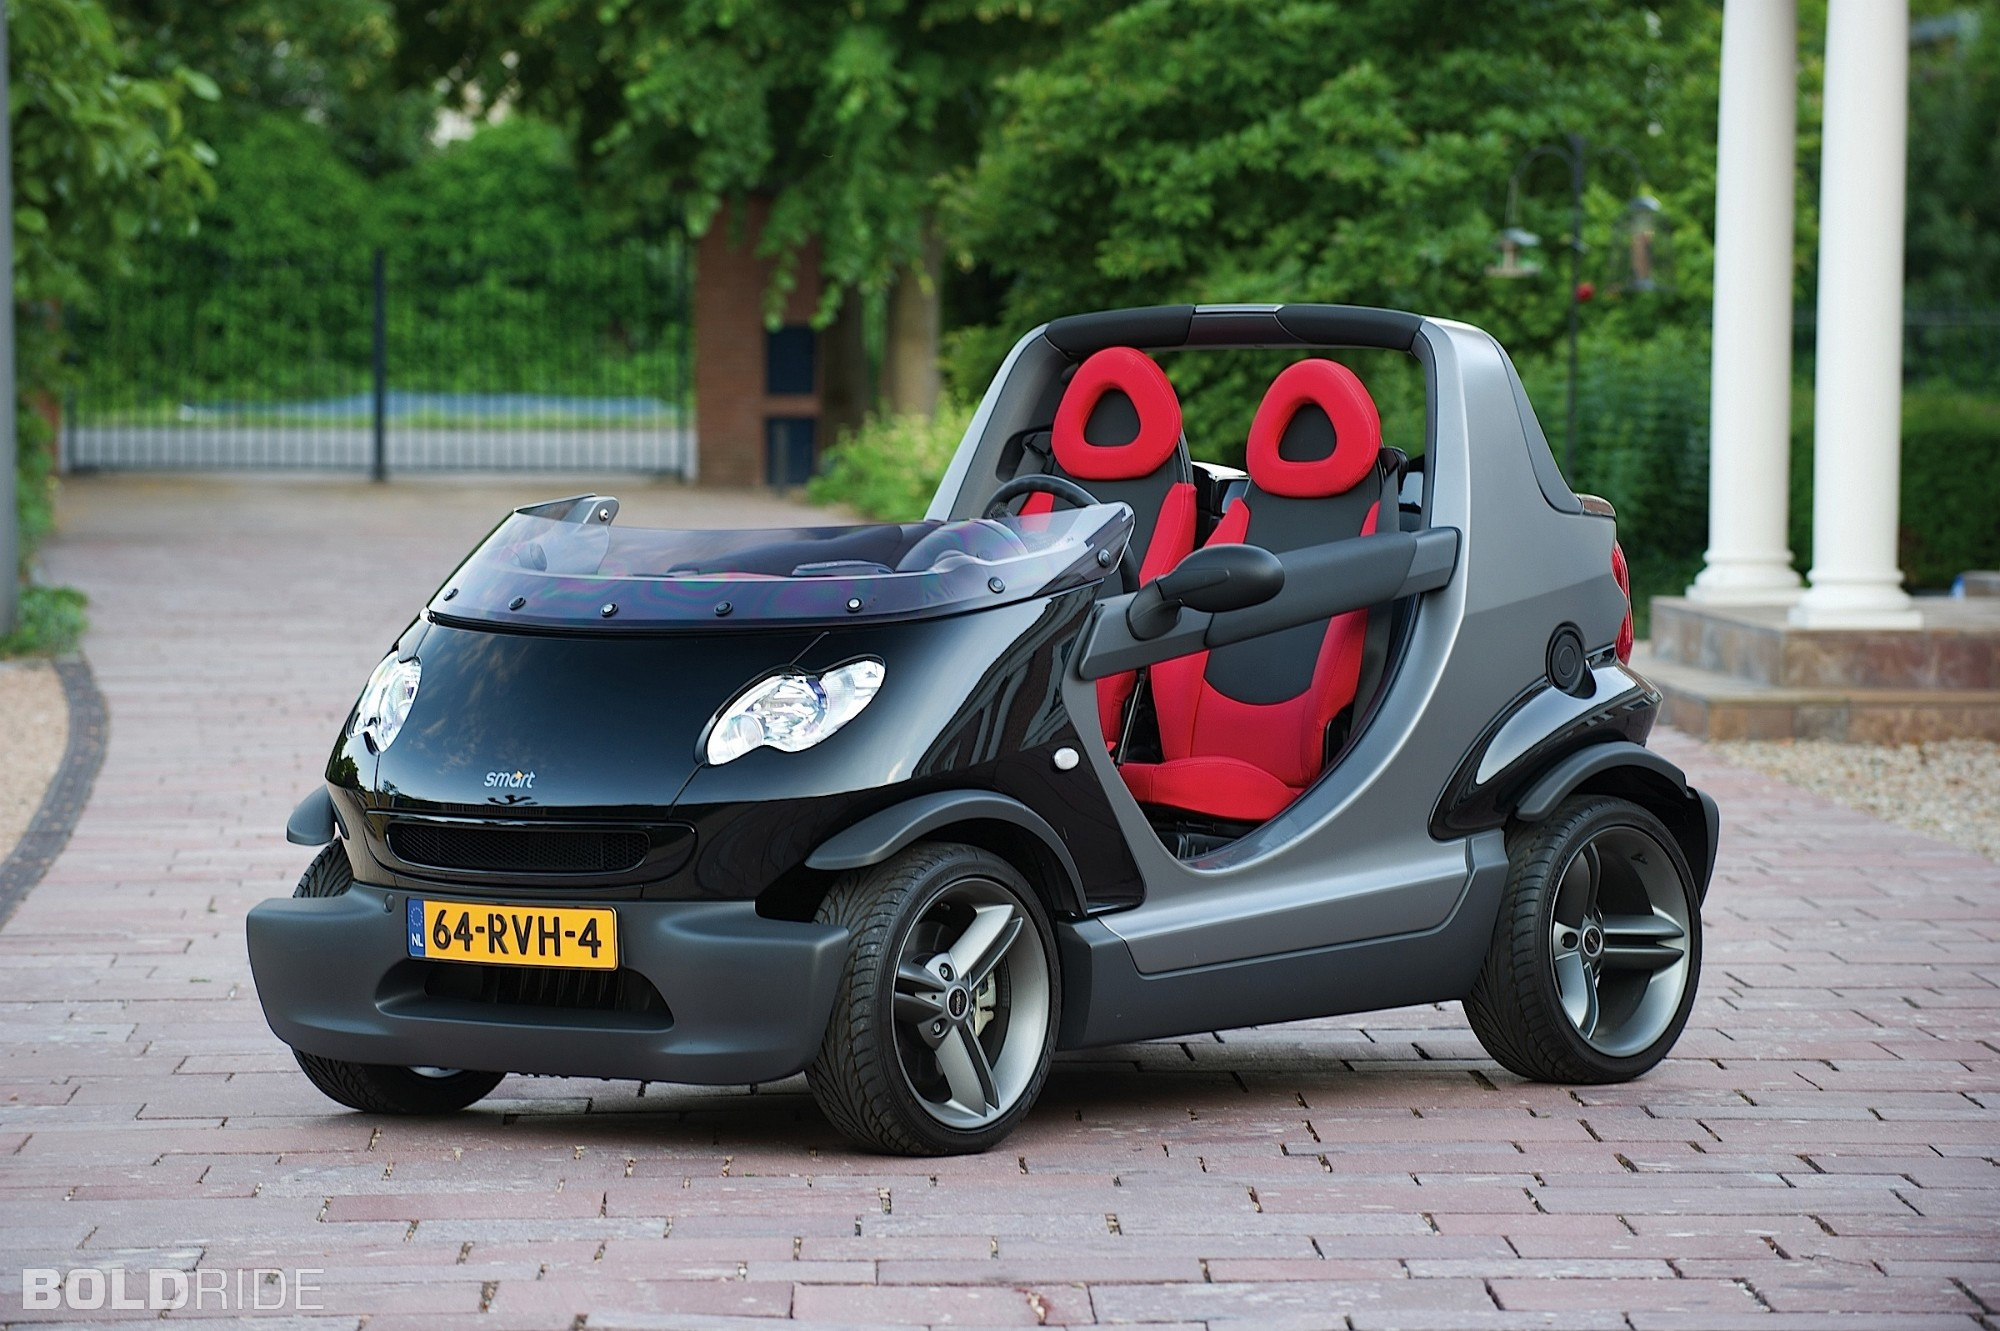 smart fortwo 450 fortwo smart forum marques. Black Bedroom Furniture Sets. Home Design Ideas